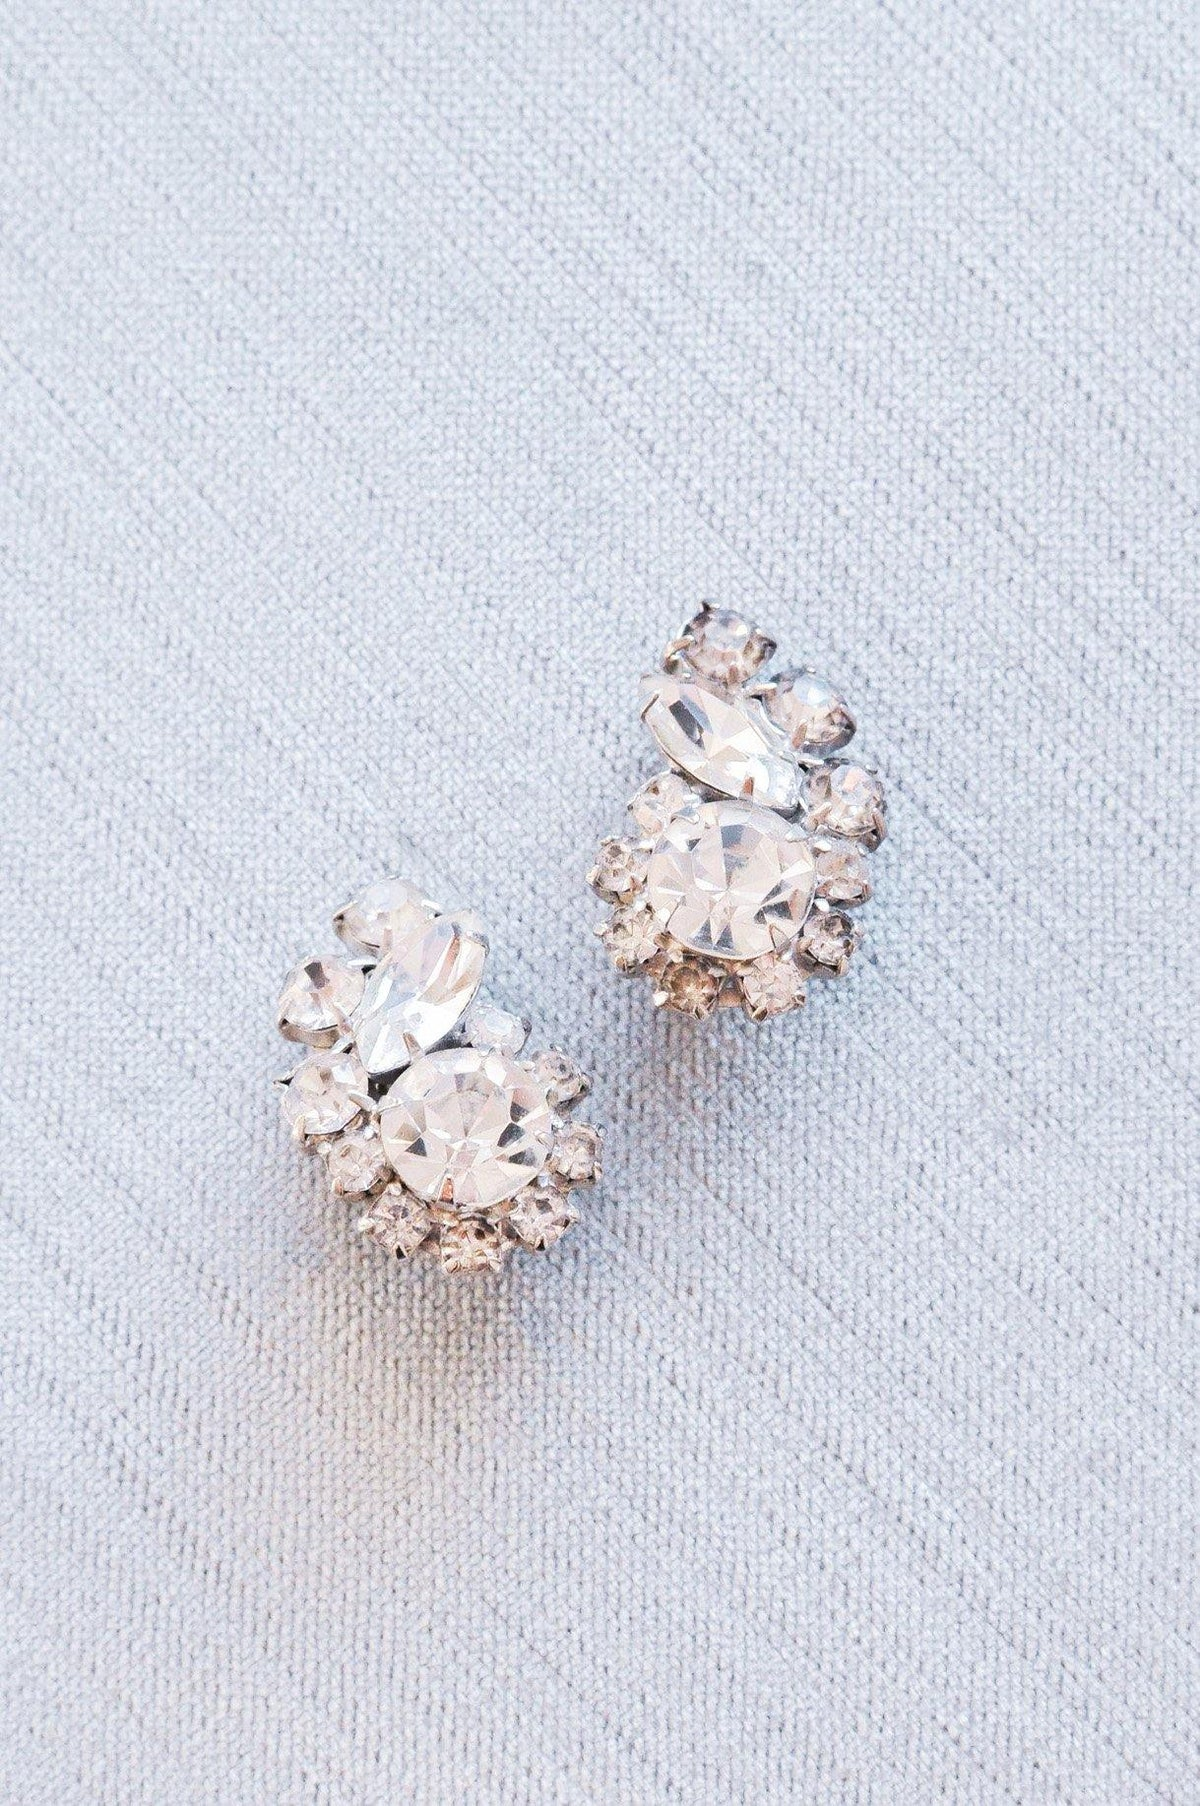 Vintage crawler bridal earrings from Sweet & Spark Wedding Collection.